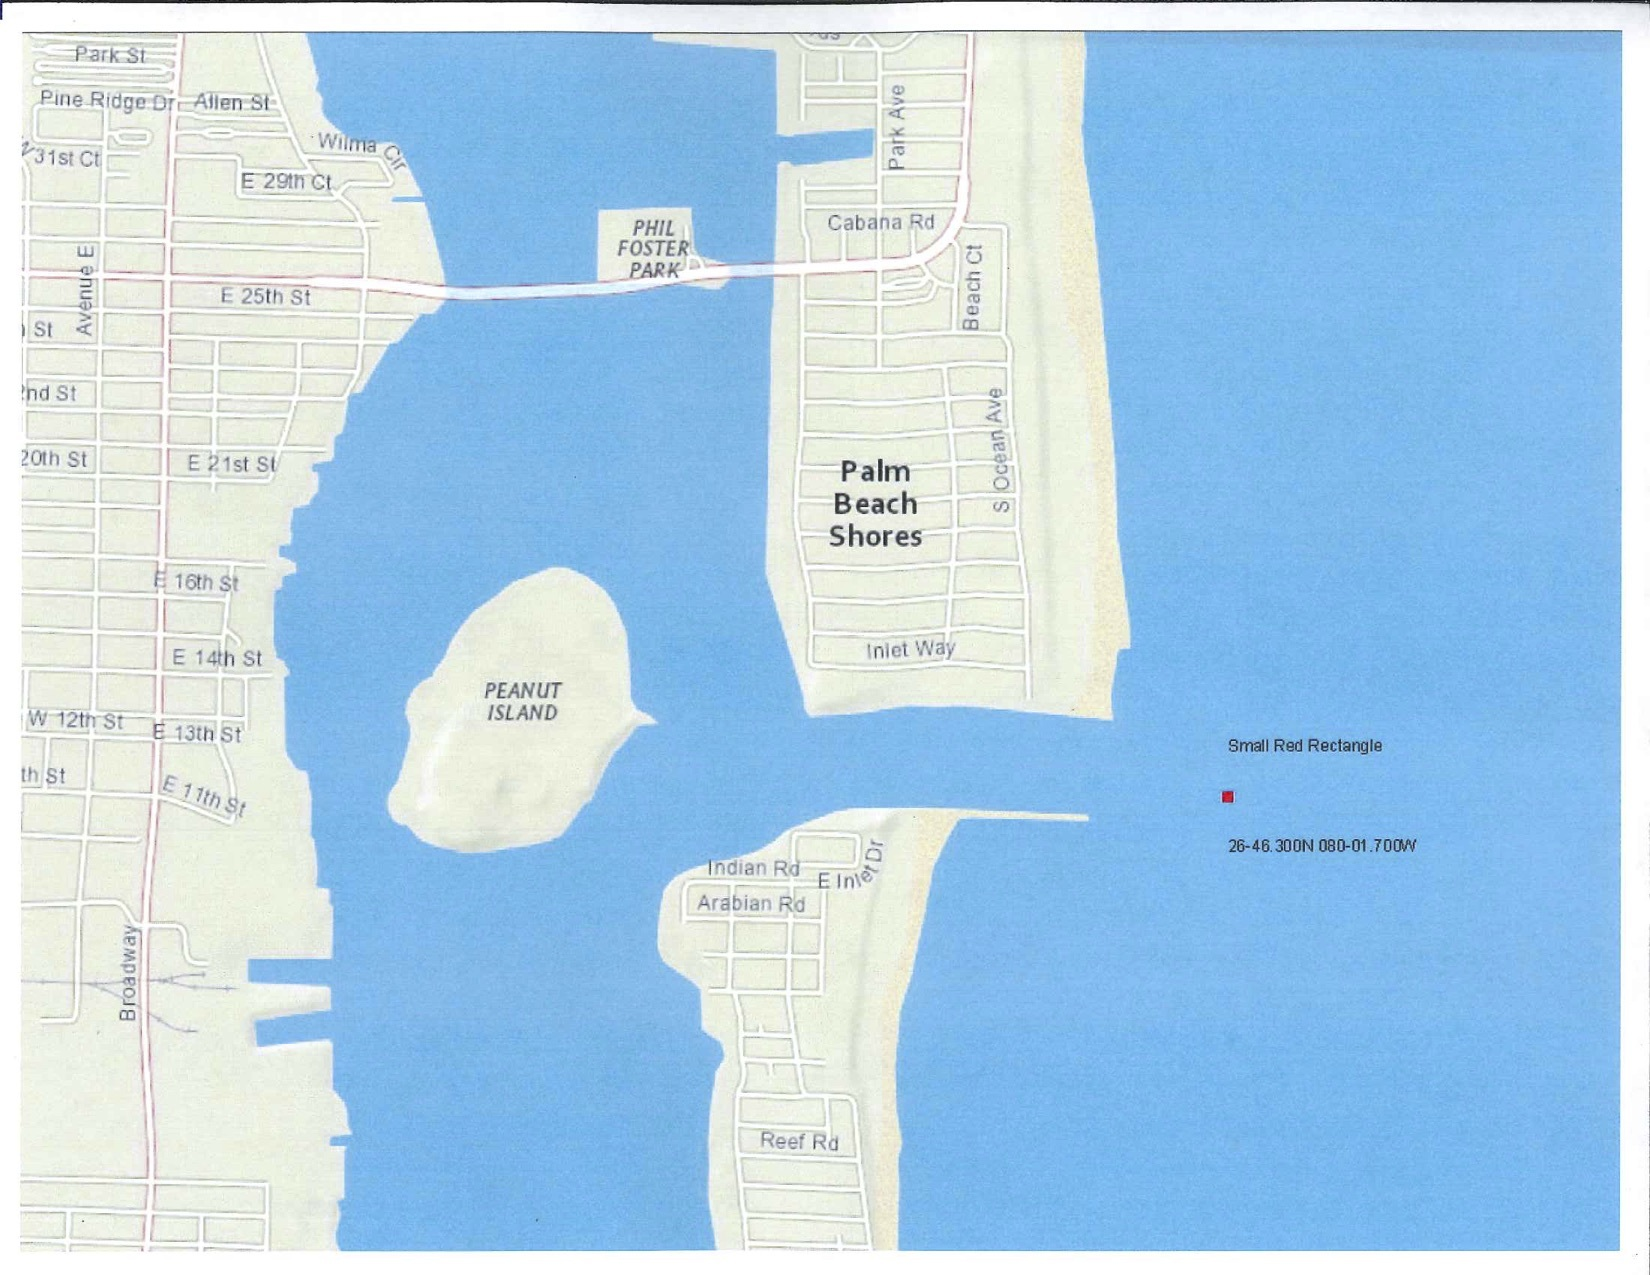 Coast Guard assists 3 people on disabled vessels in South Florida